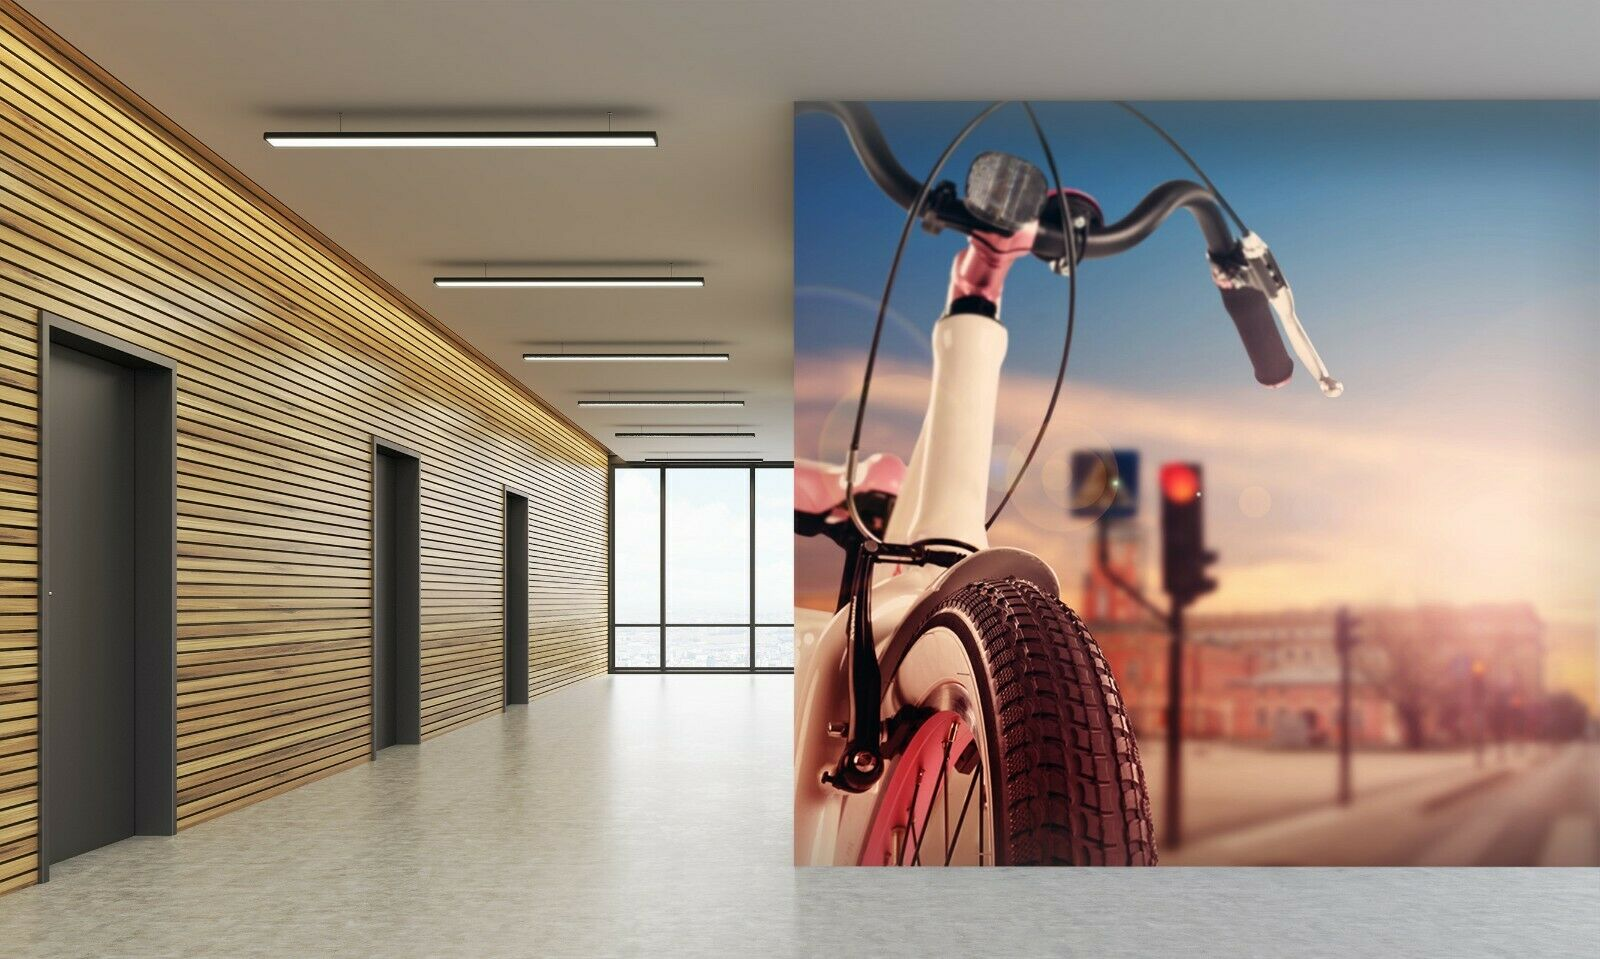 3D Bicycle I04 Transport WandPapier Mural Sefl-adhesive Removable Angelia